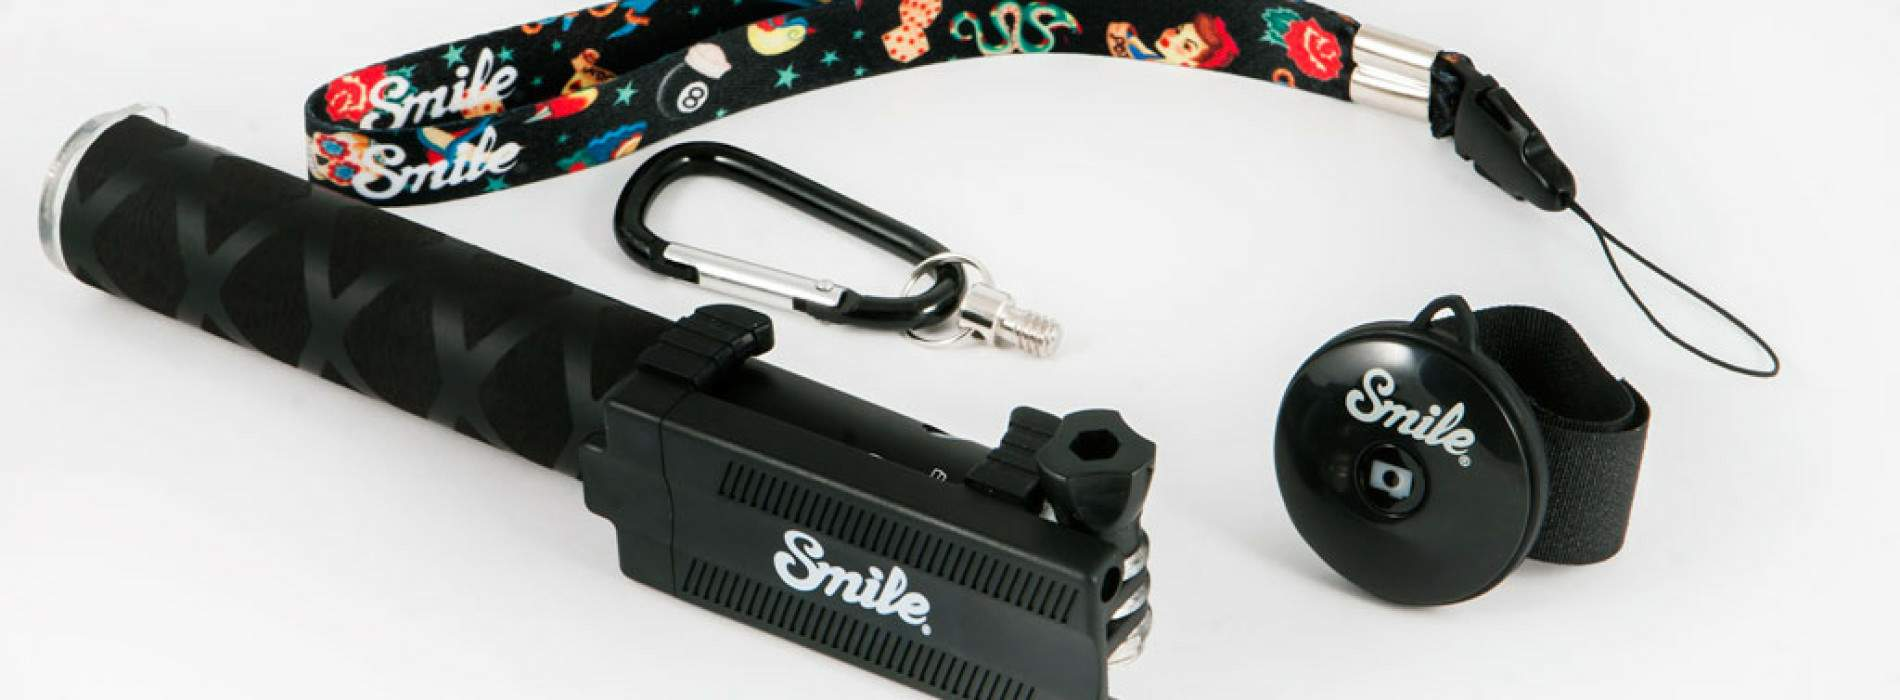 Concurso: Smile Selfie Kit Pocket